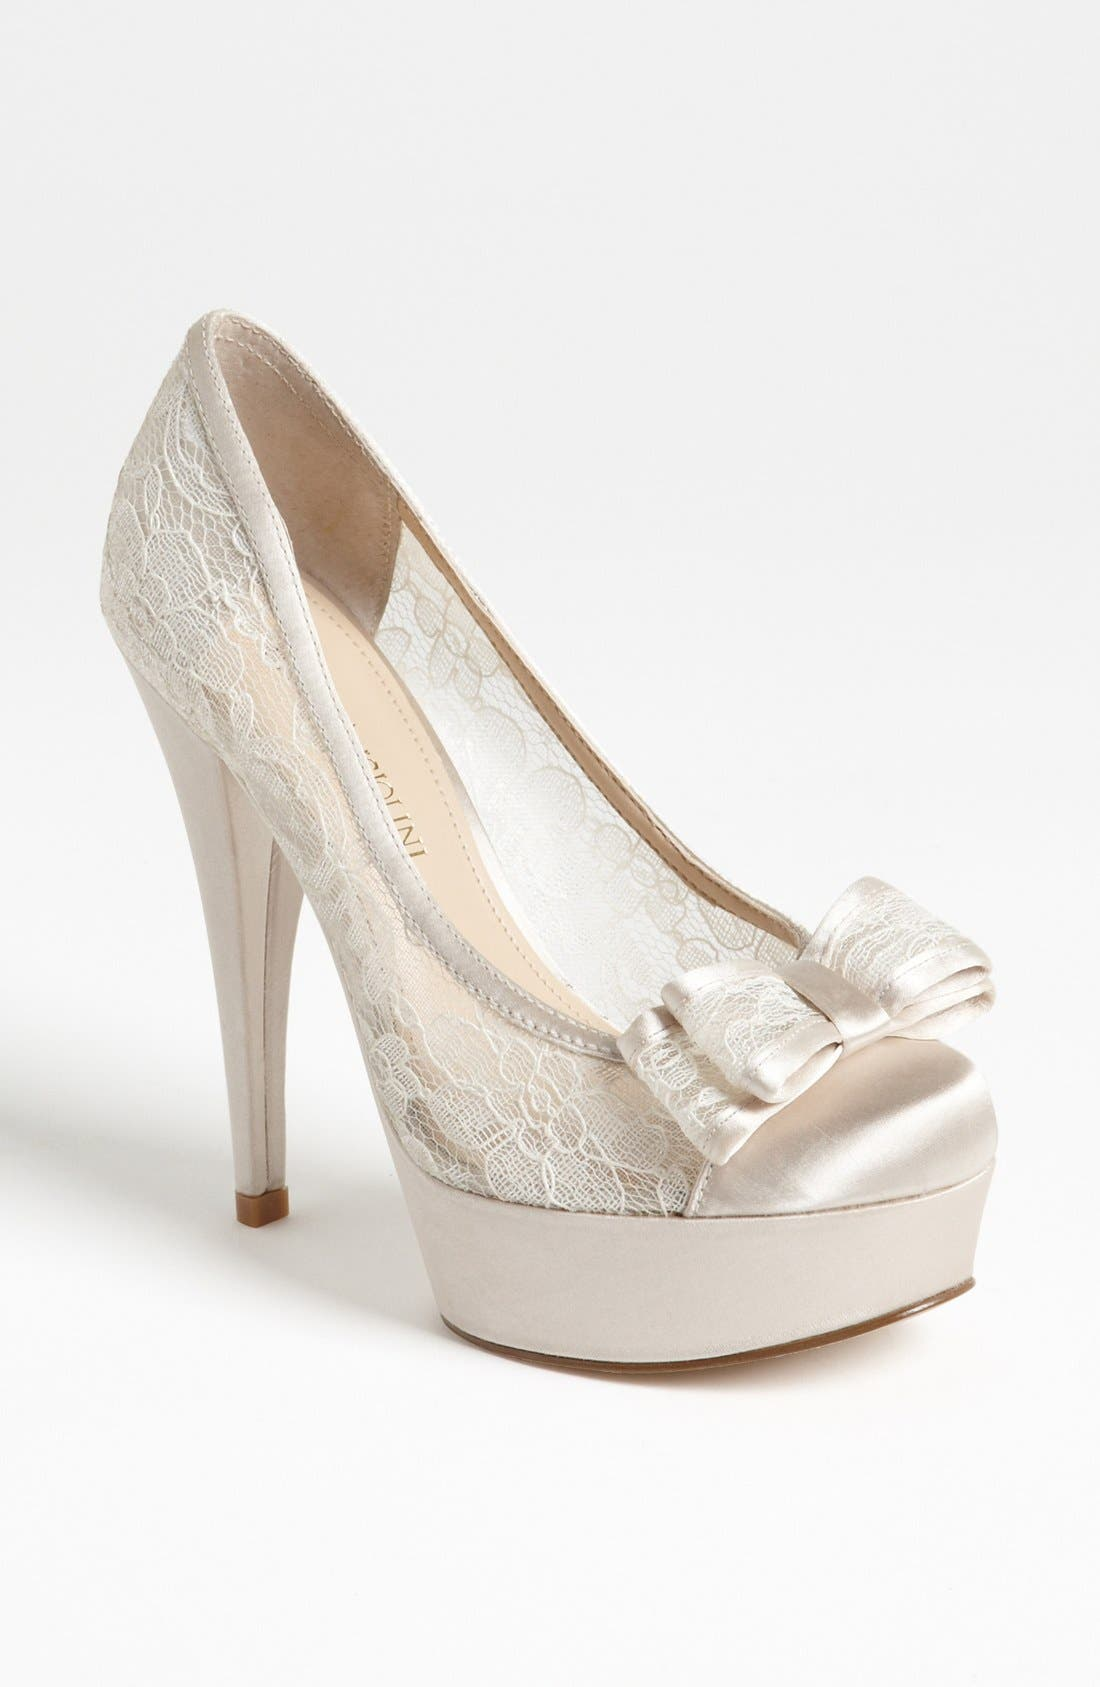 Alternate Image 1 Selected - Enzo Angiolini 'Brettani' Pump (Nordstrom Exclusive)